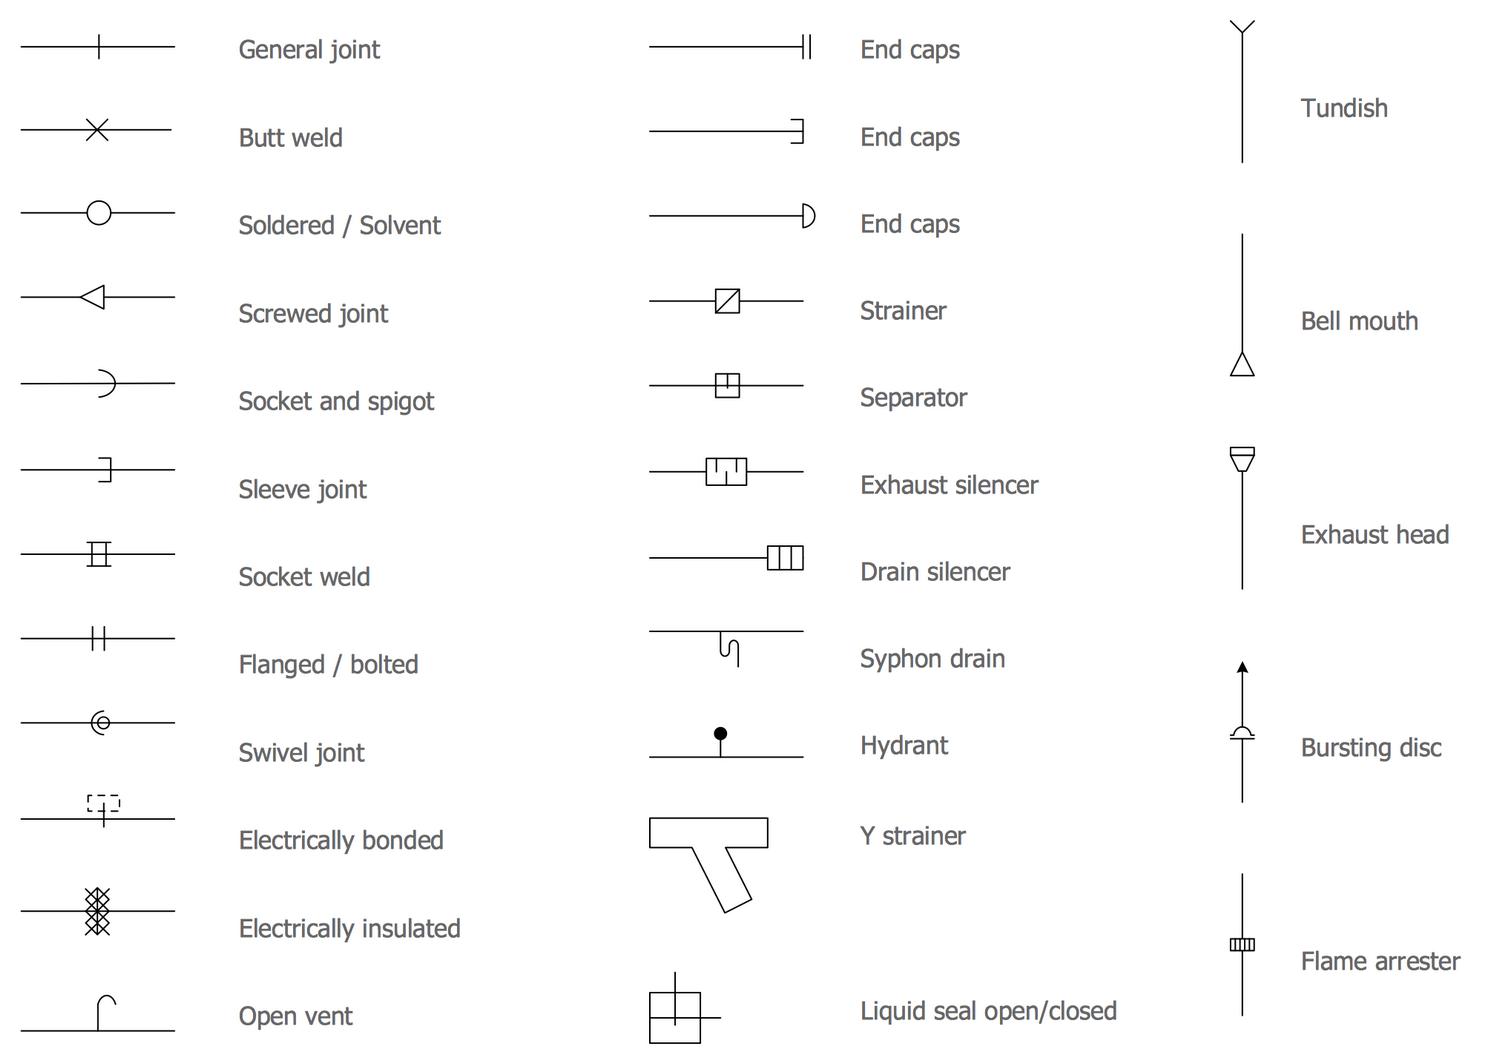 [DIAGRAM] Piping And Instrumentation Diagram Legend